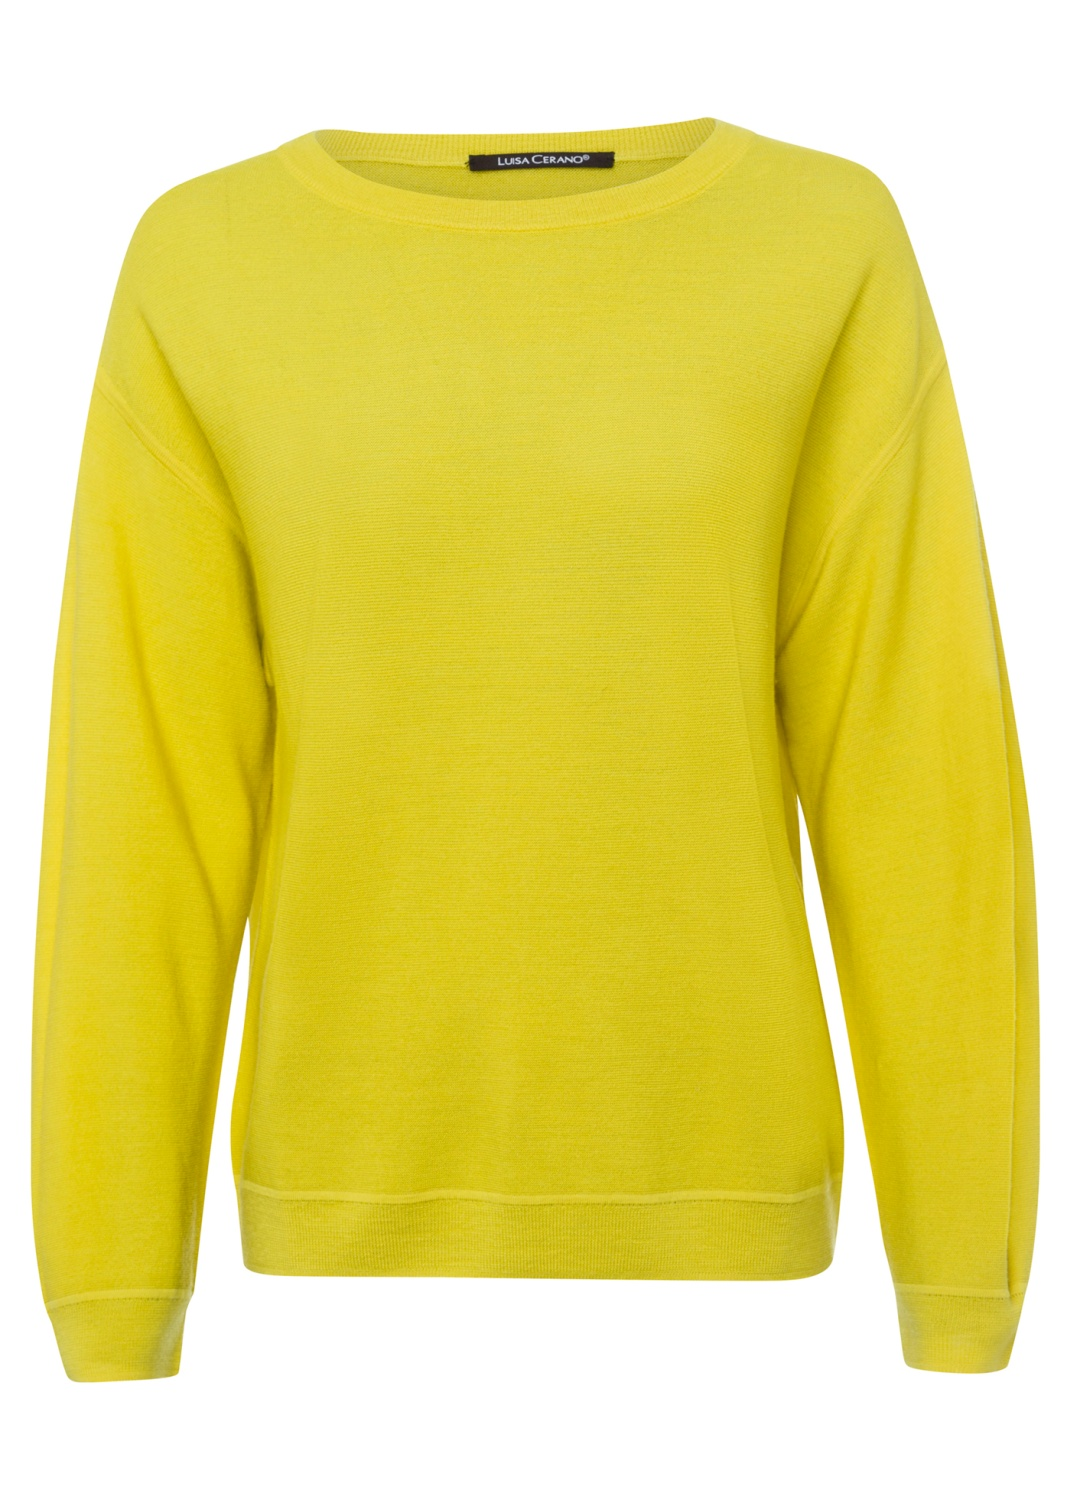 Woll-Pullover image number 0